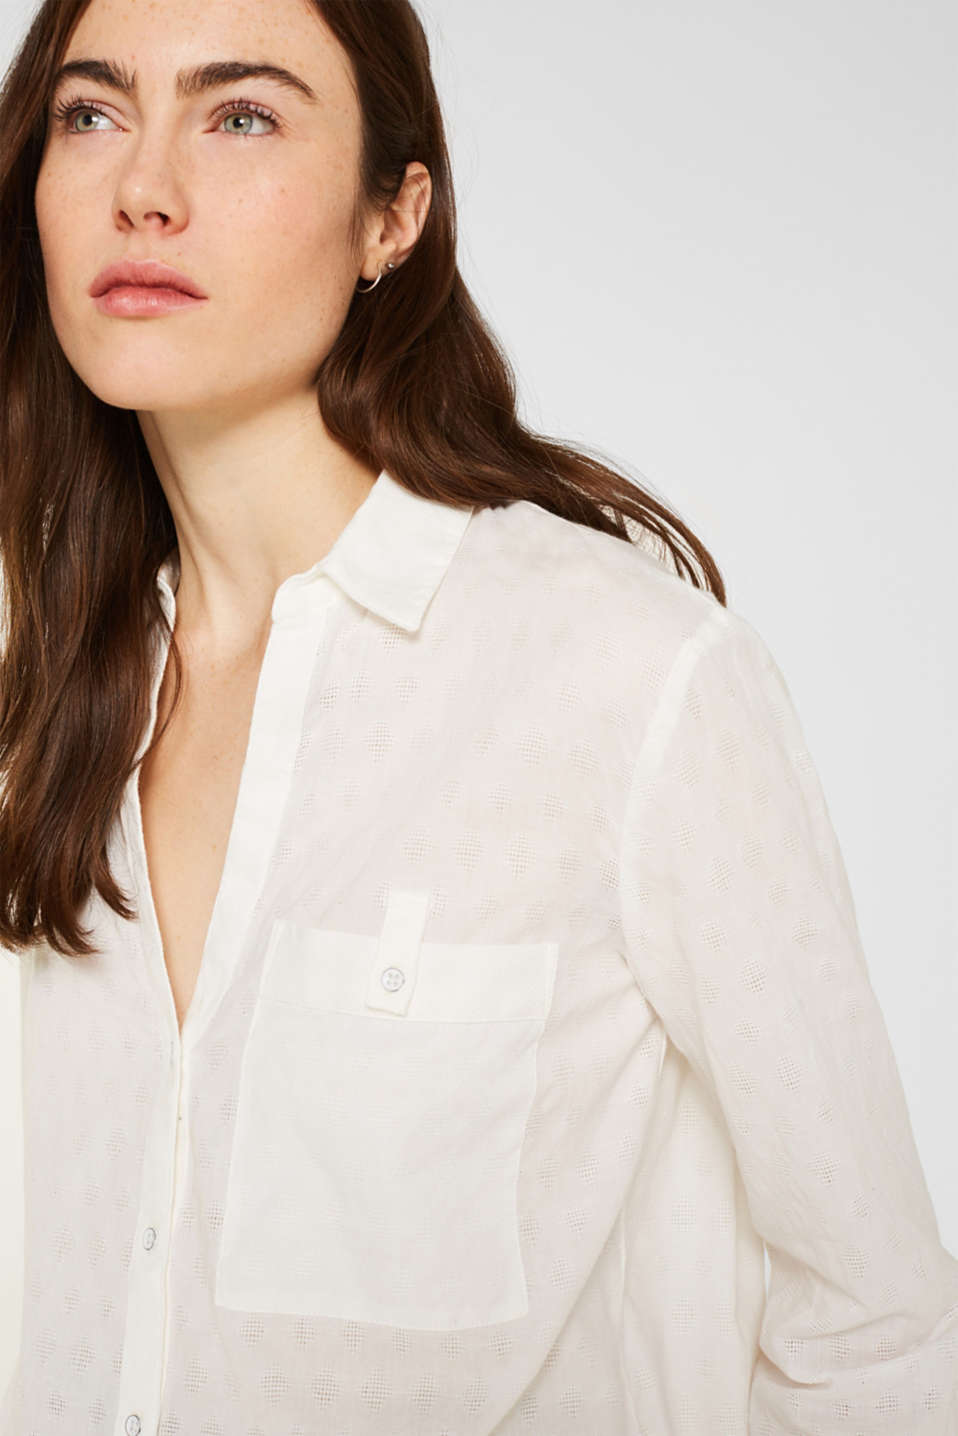 Blouse with a jacquard pattern, 100% cotton, OFF WHITE, detail image number 2